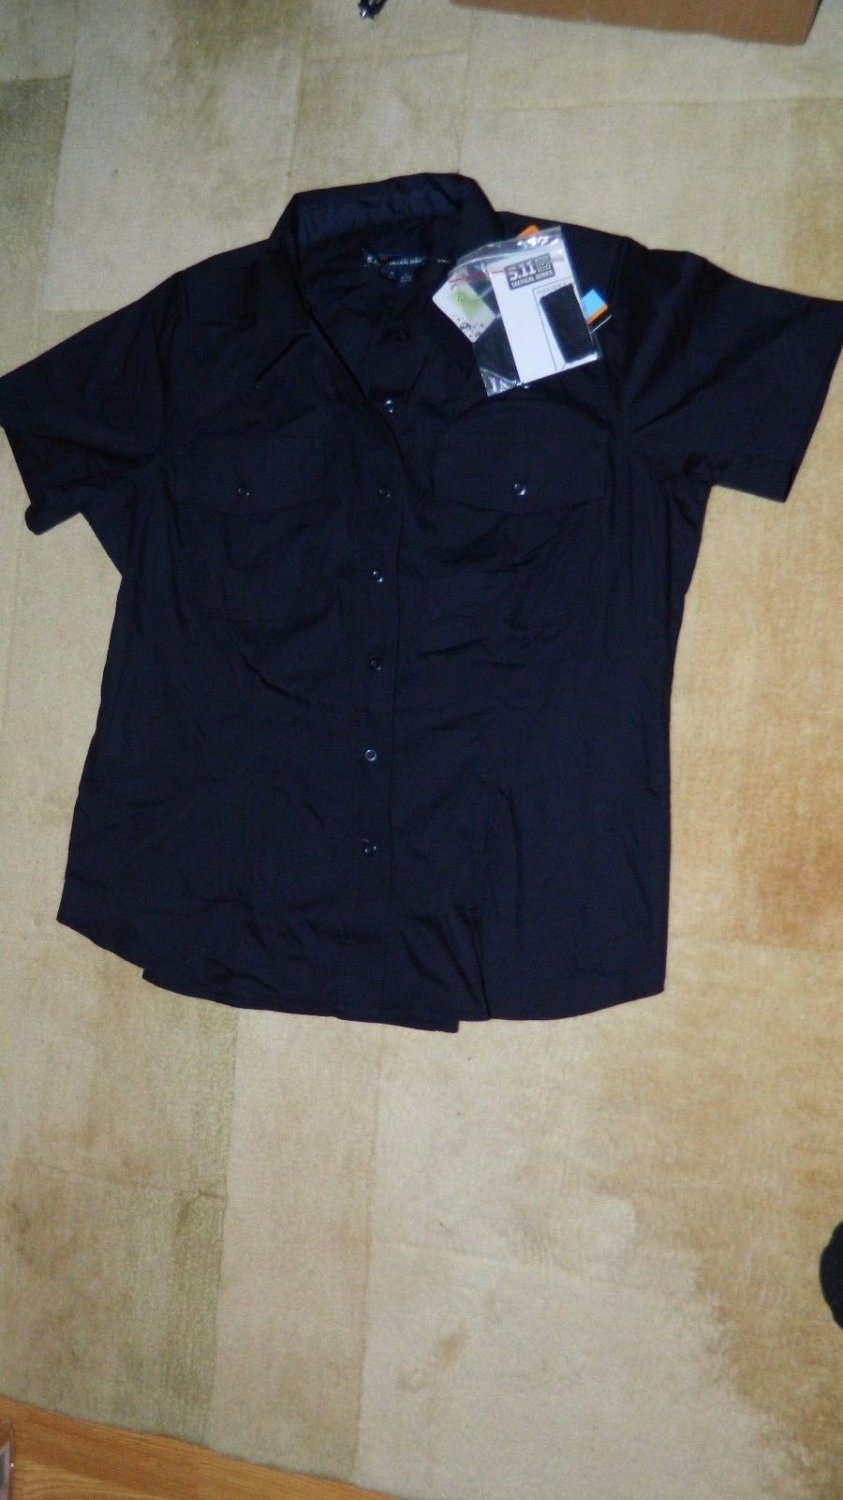 Women's 5.11 Tactical Taclite PDU Short Sleeve Shirt Work Uniform 61169W